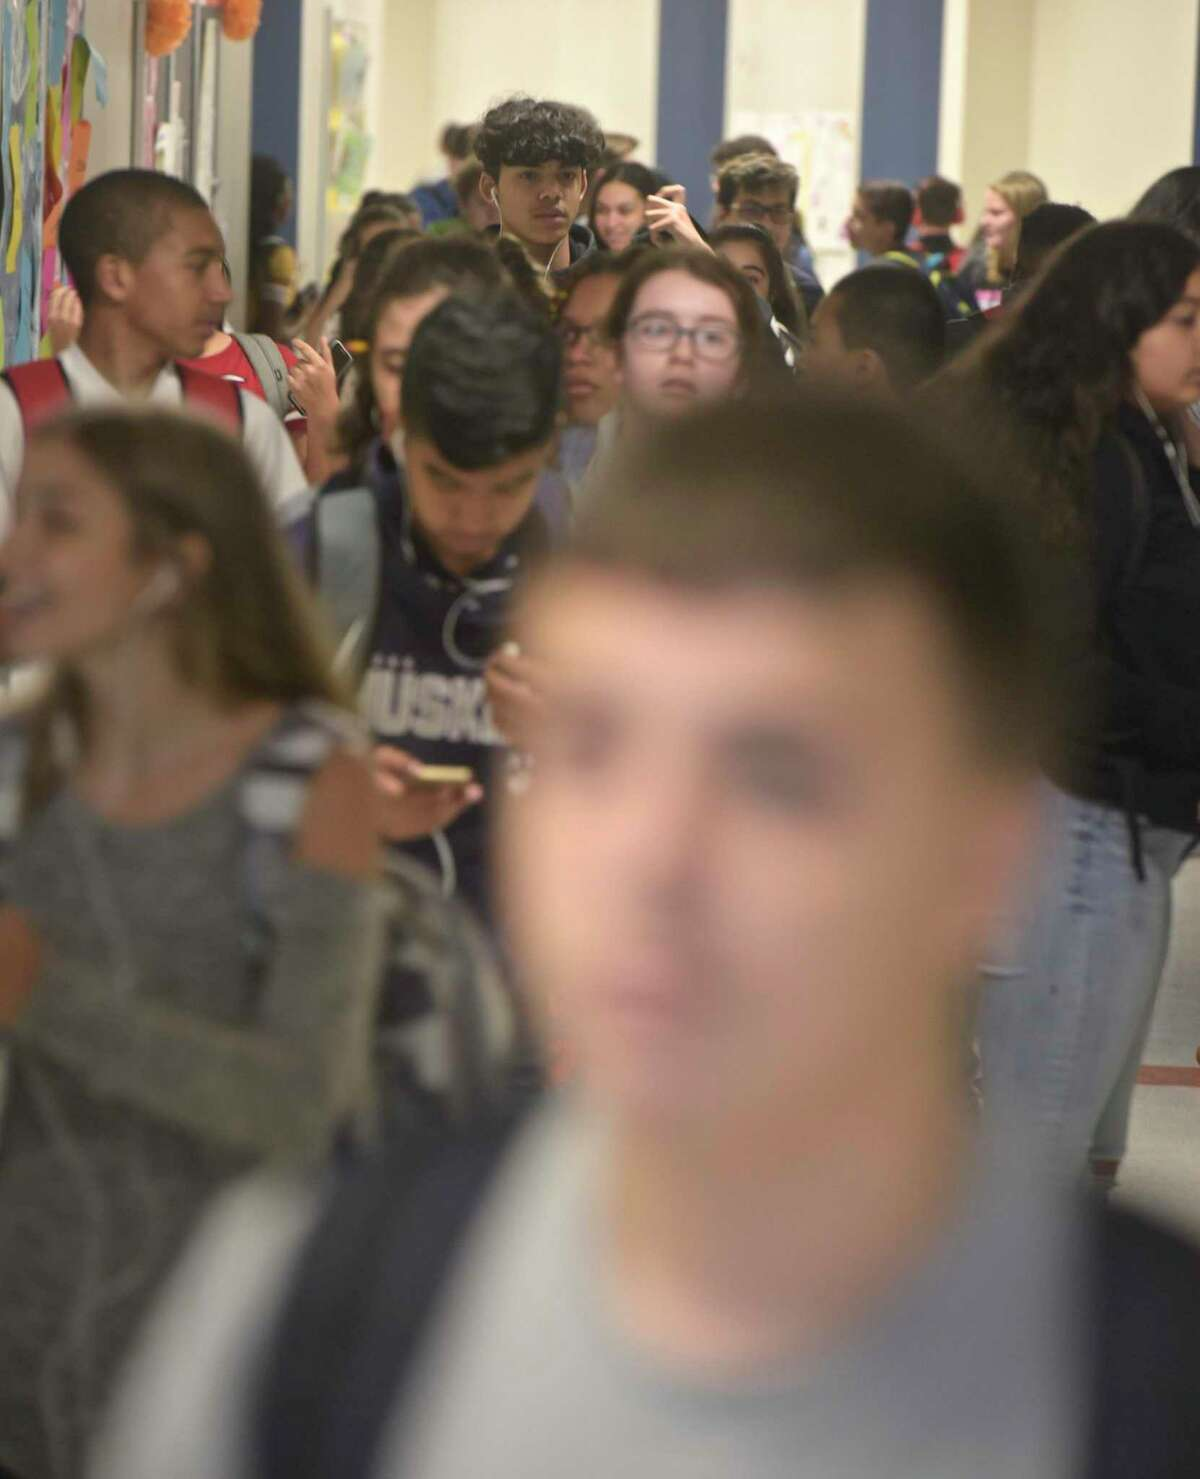 Students fill the hallway of the new addition at Danbury High School between classes on Wednesday, October 10, 2018, in Danbury, Conn.